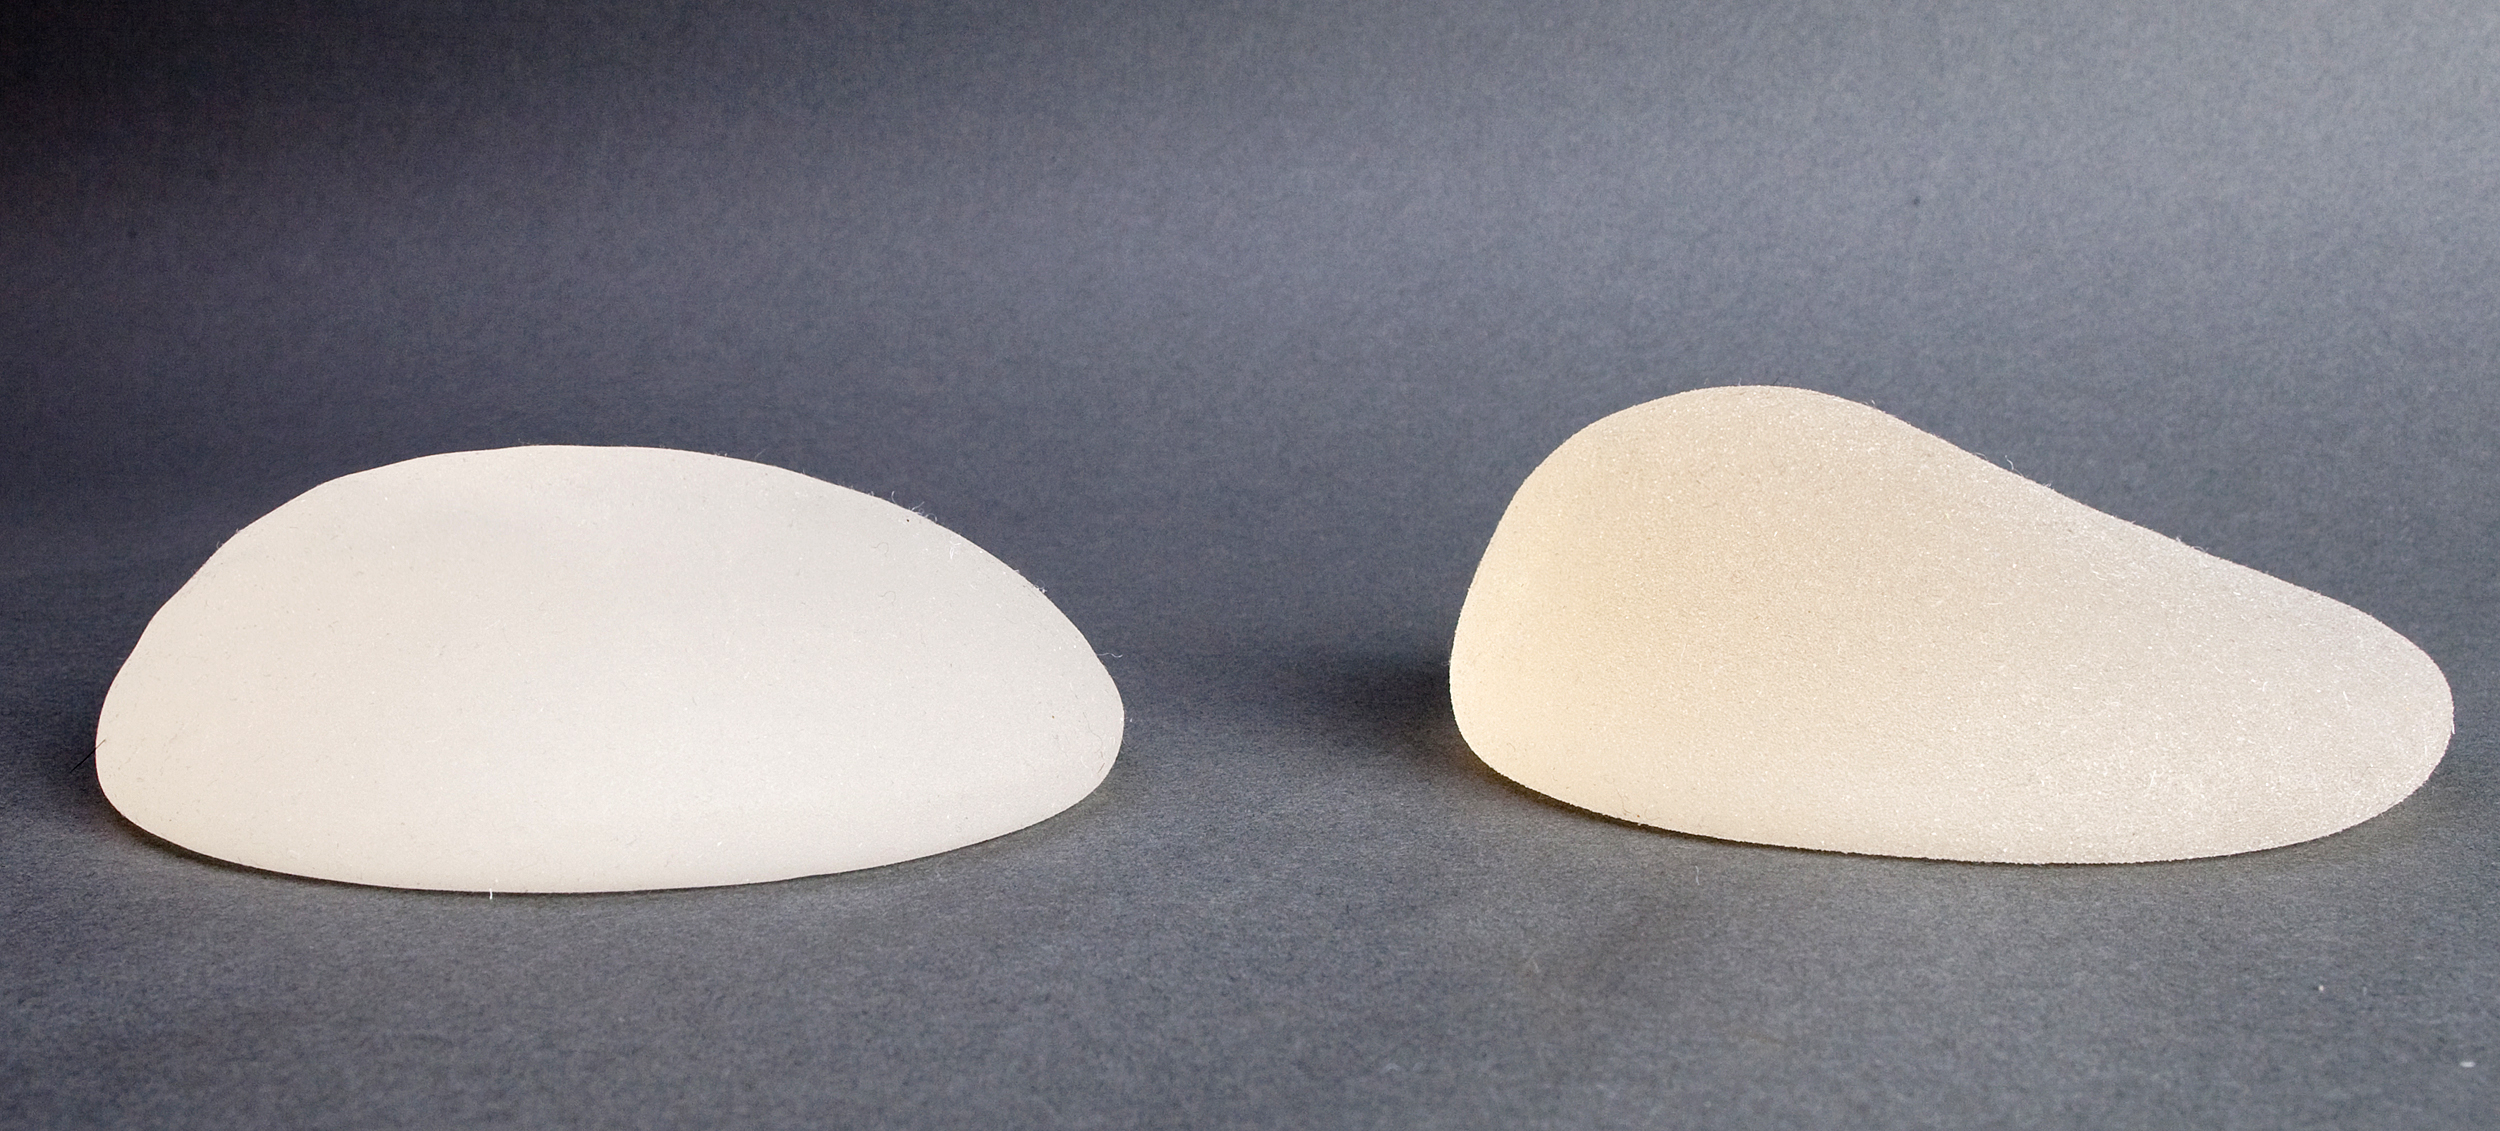 Allergan Recalls Textured Breast Implant Tied To Rare Cancer-5551